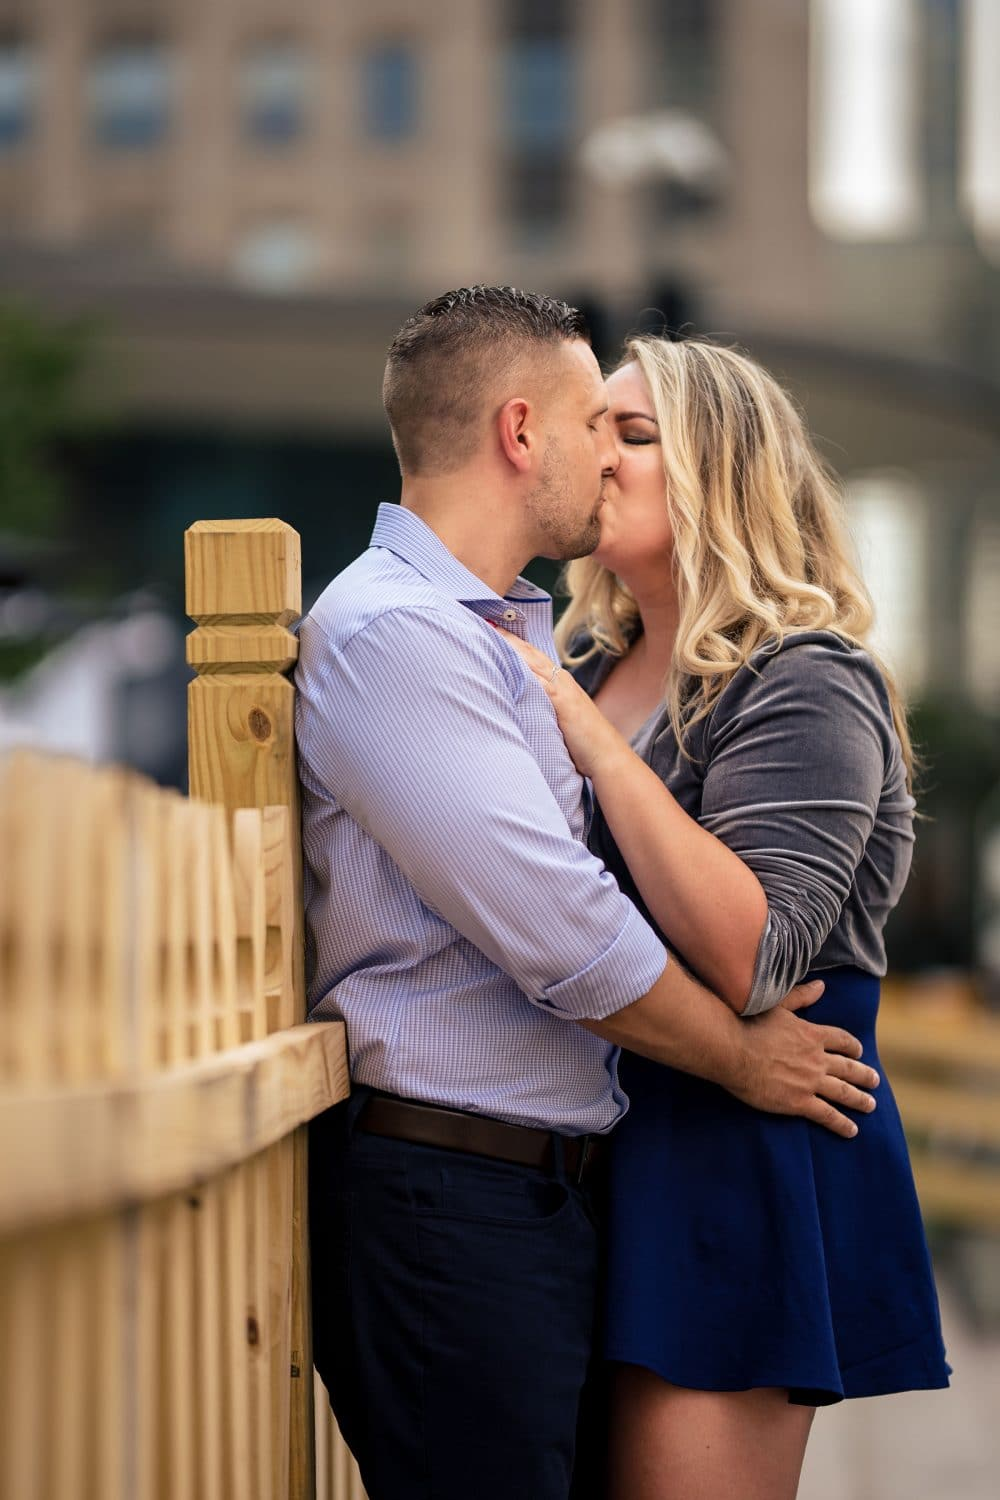 Passionate embrace at Park in Philly Philadelphia Engagement Shot By John Ryan